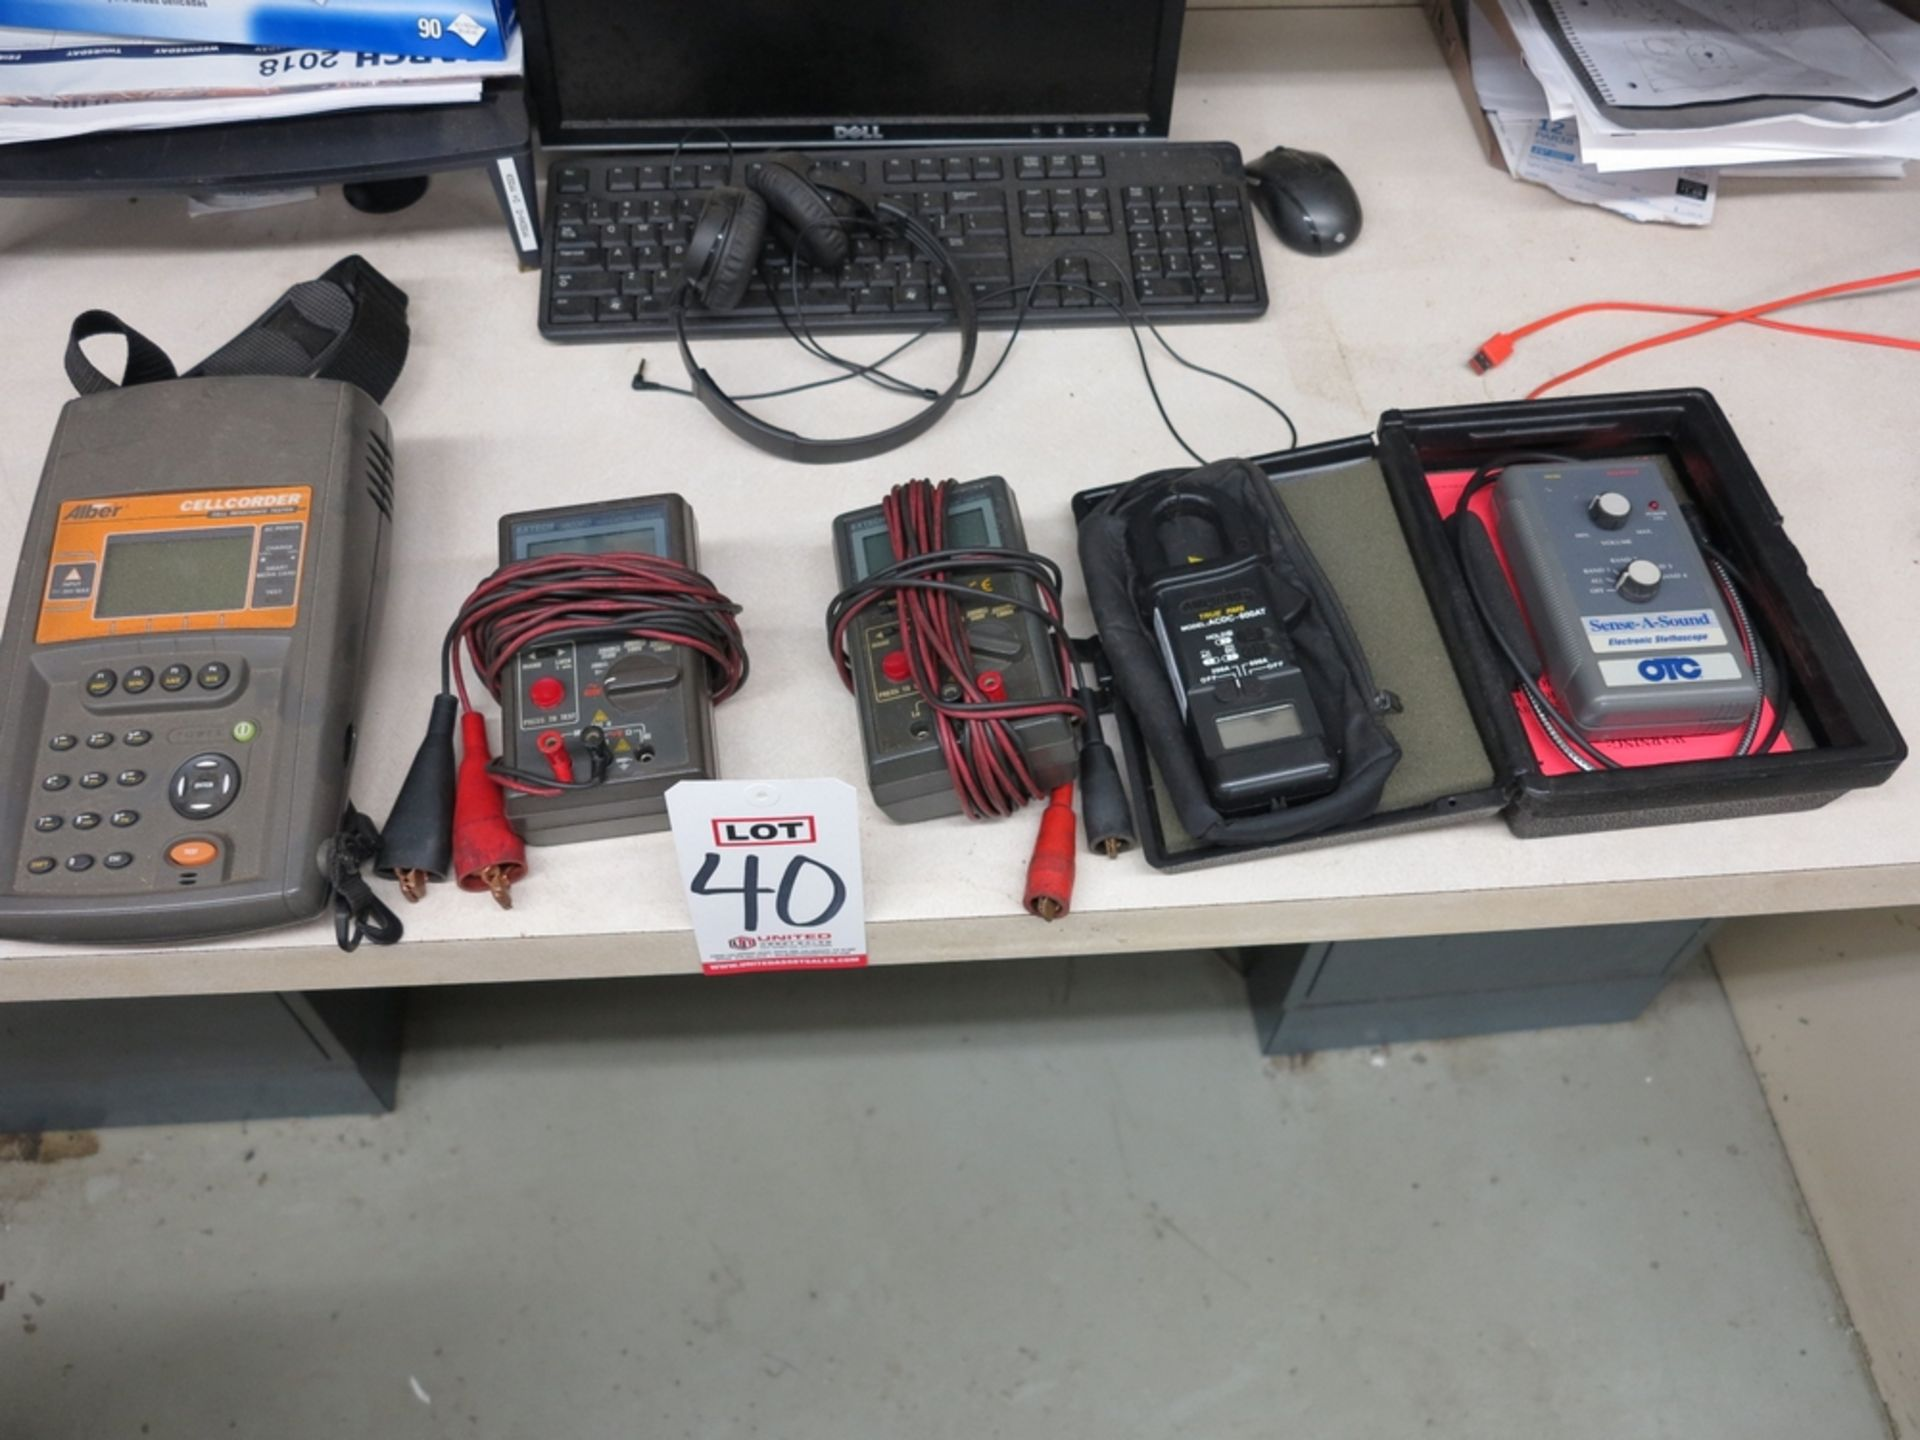 Lot 40 - LOT - MISC TEST EQUIPMENT: ELECTRONIC STETHOSCOPE, AMPROBE ACDC-600AT, (2) EXTECH 380360